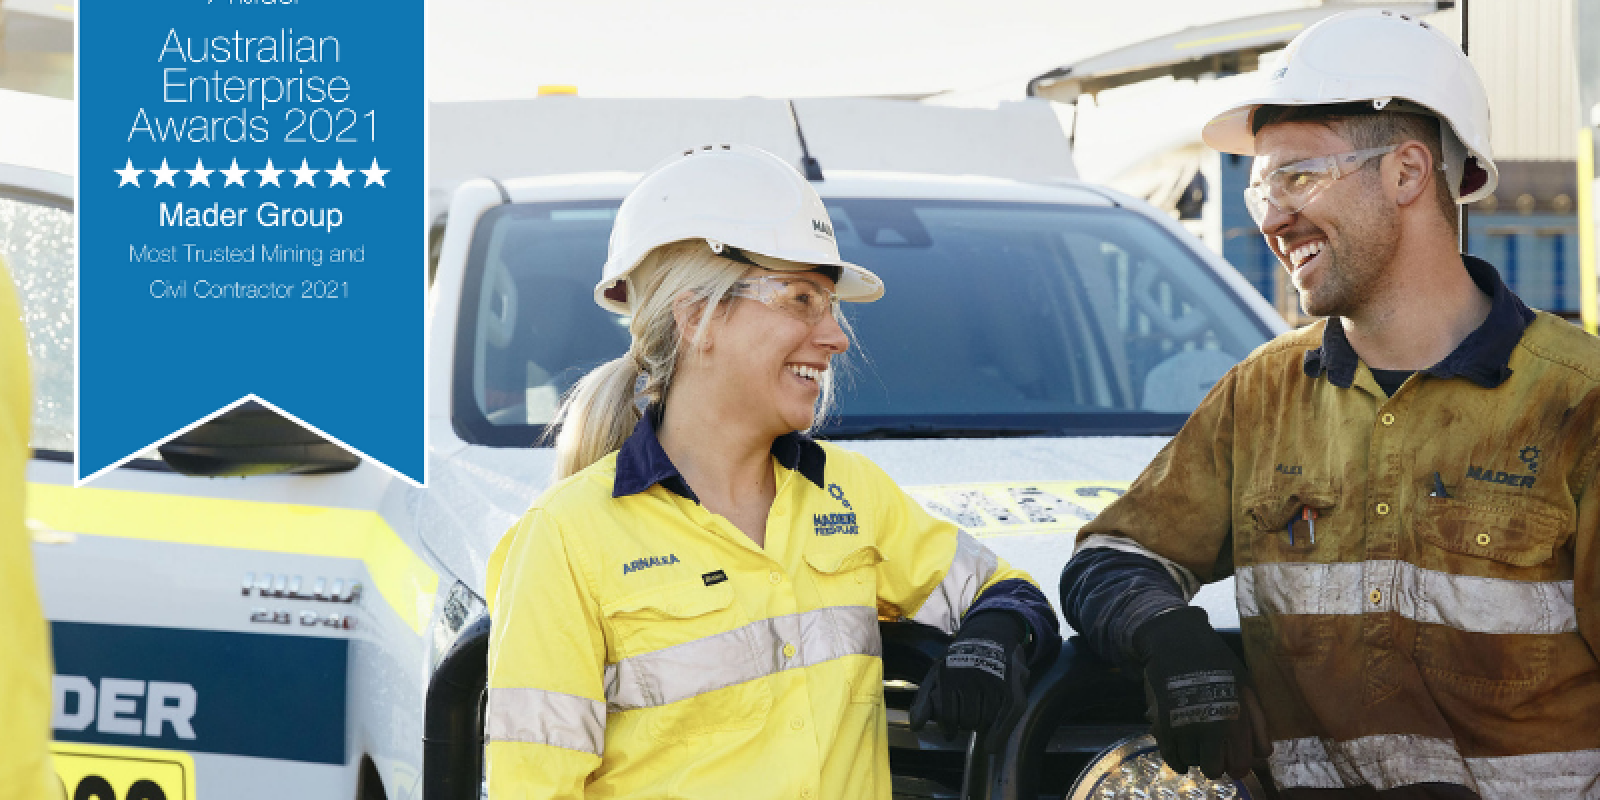 Mader Group awarded 'Most Trusted Mining and Civil Contractor' in Australian Enterprise Awards